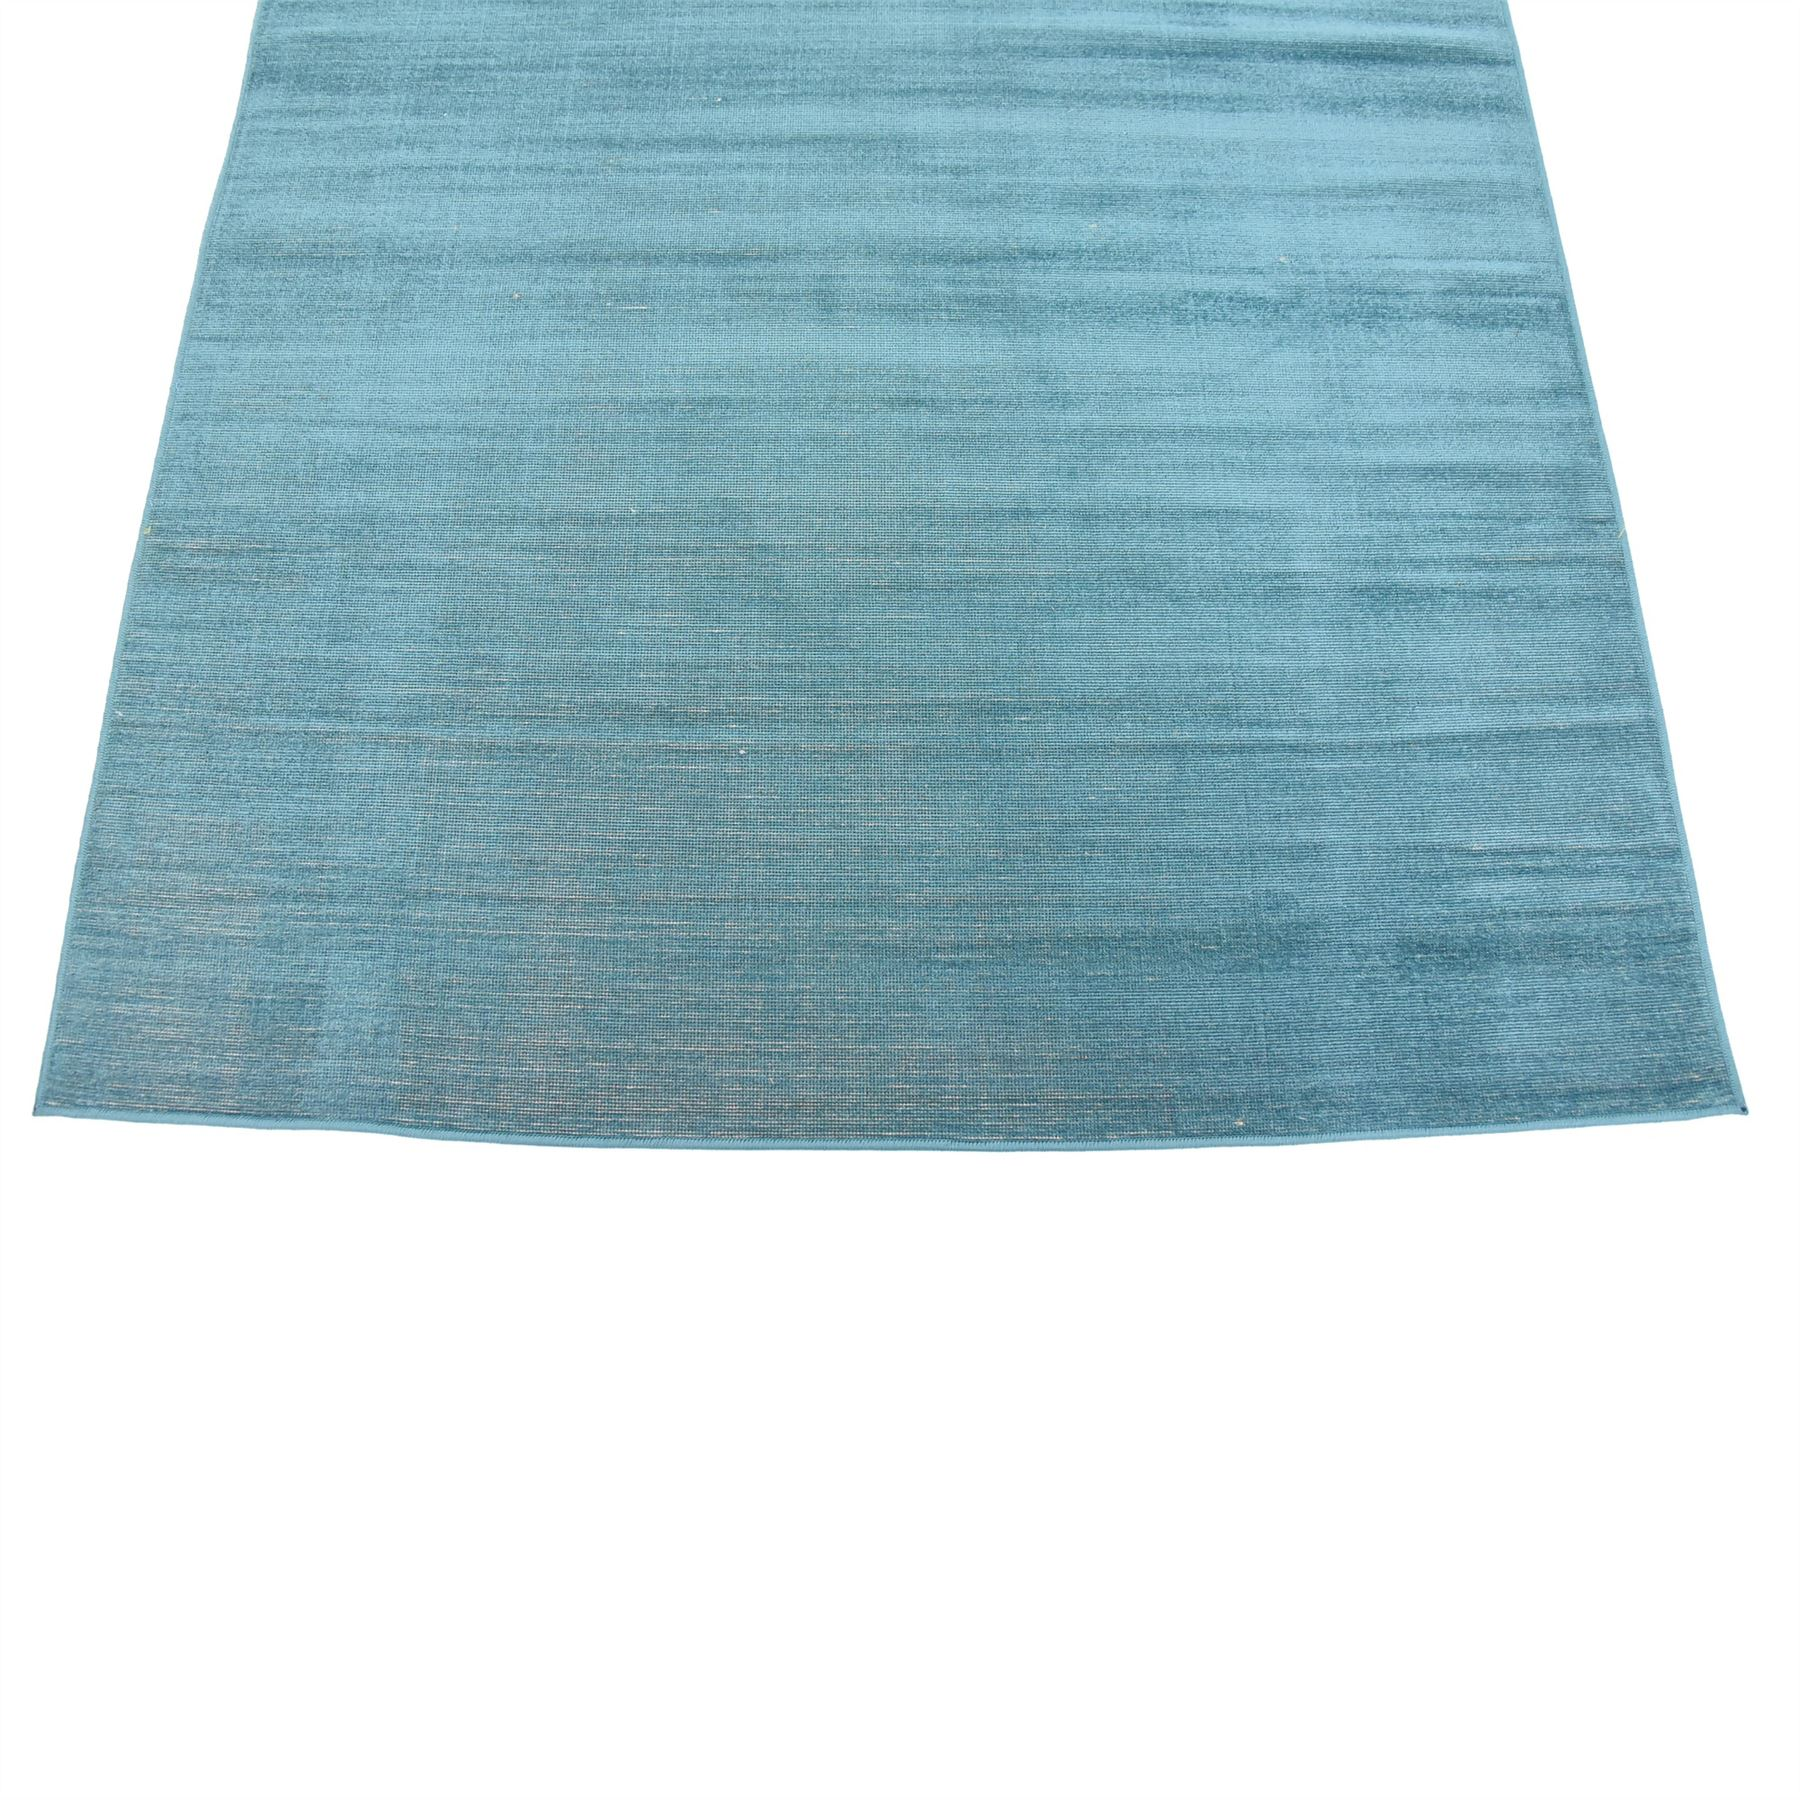 Teal 4' 11 X 8' Tribeca Heritage Area Carpets Flat Weave